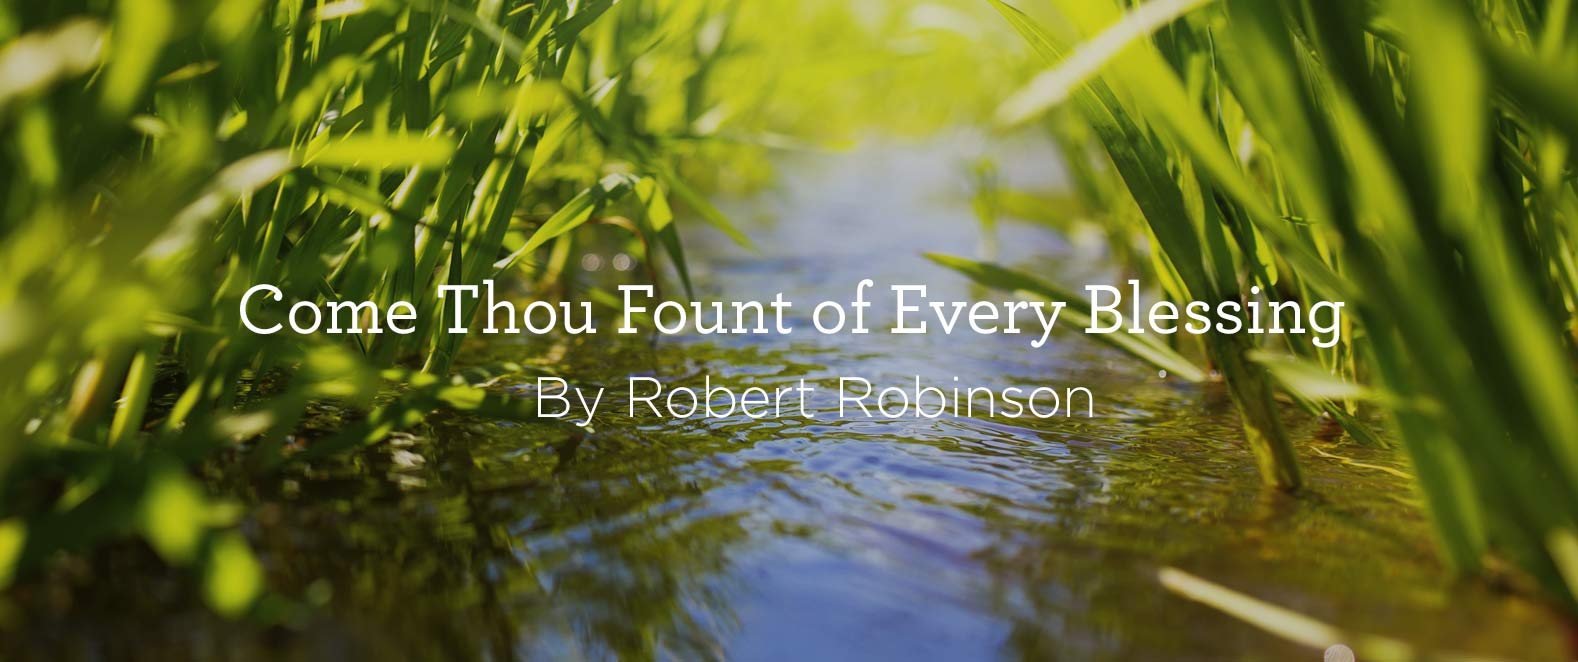 Come-Thou-Fount_HymnBlogPost